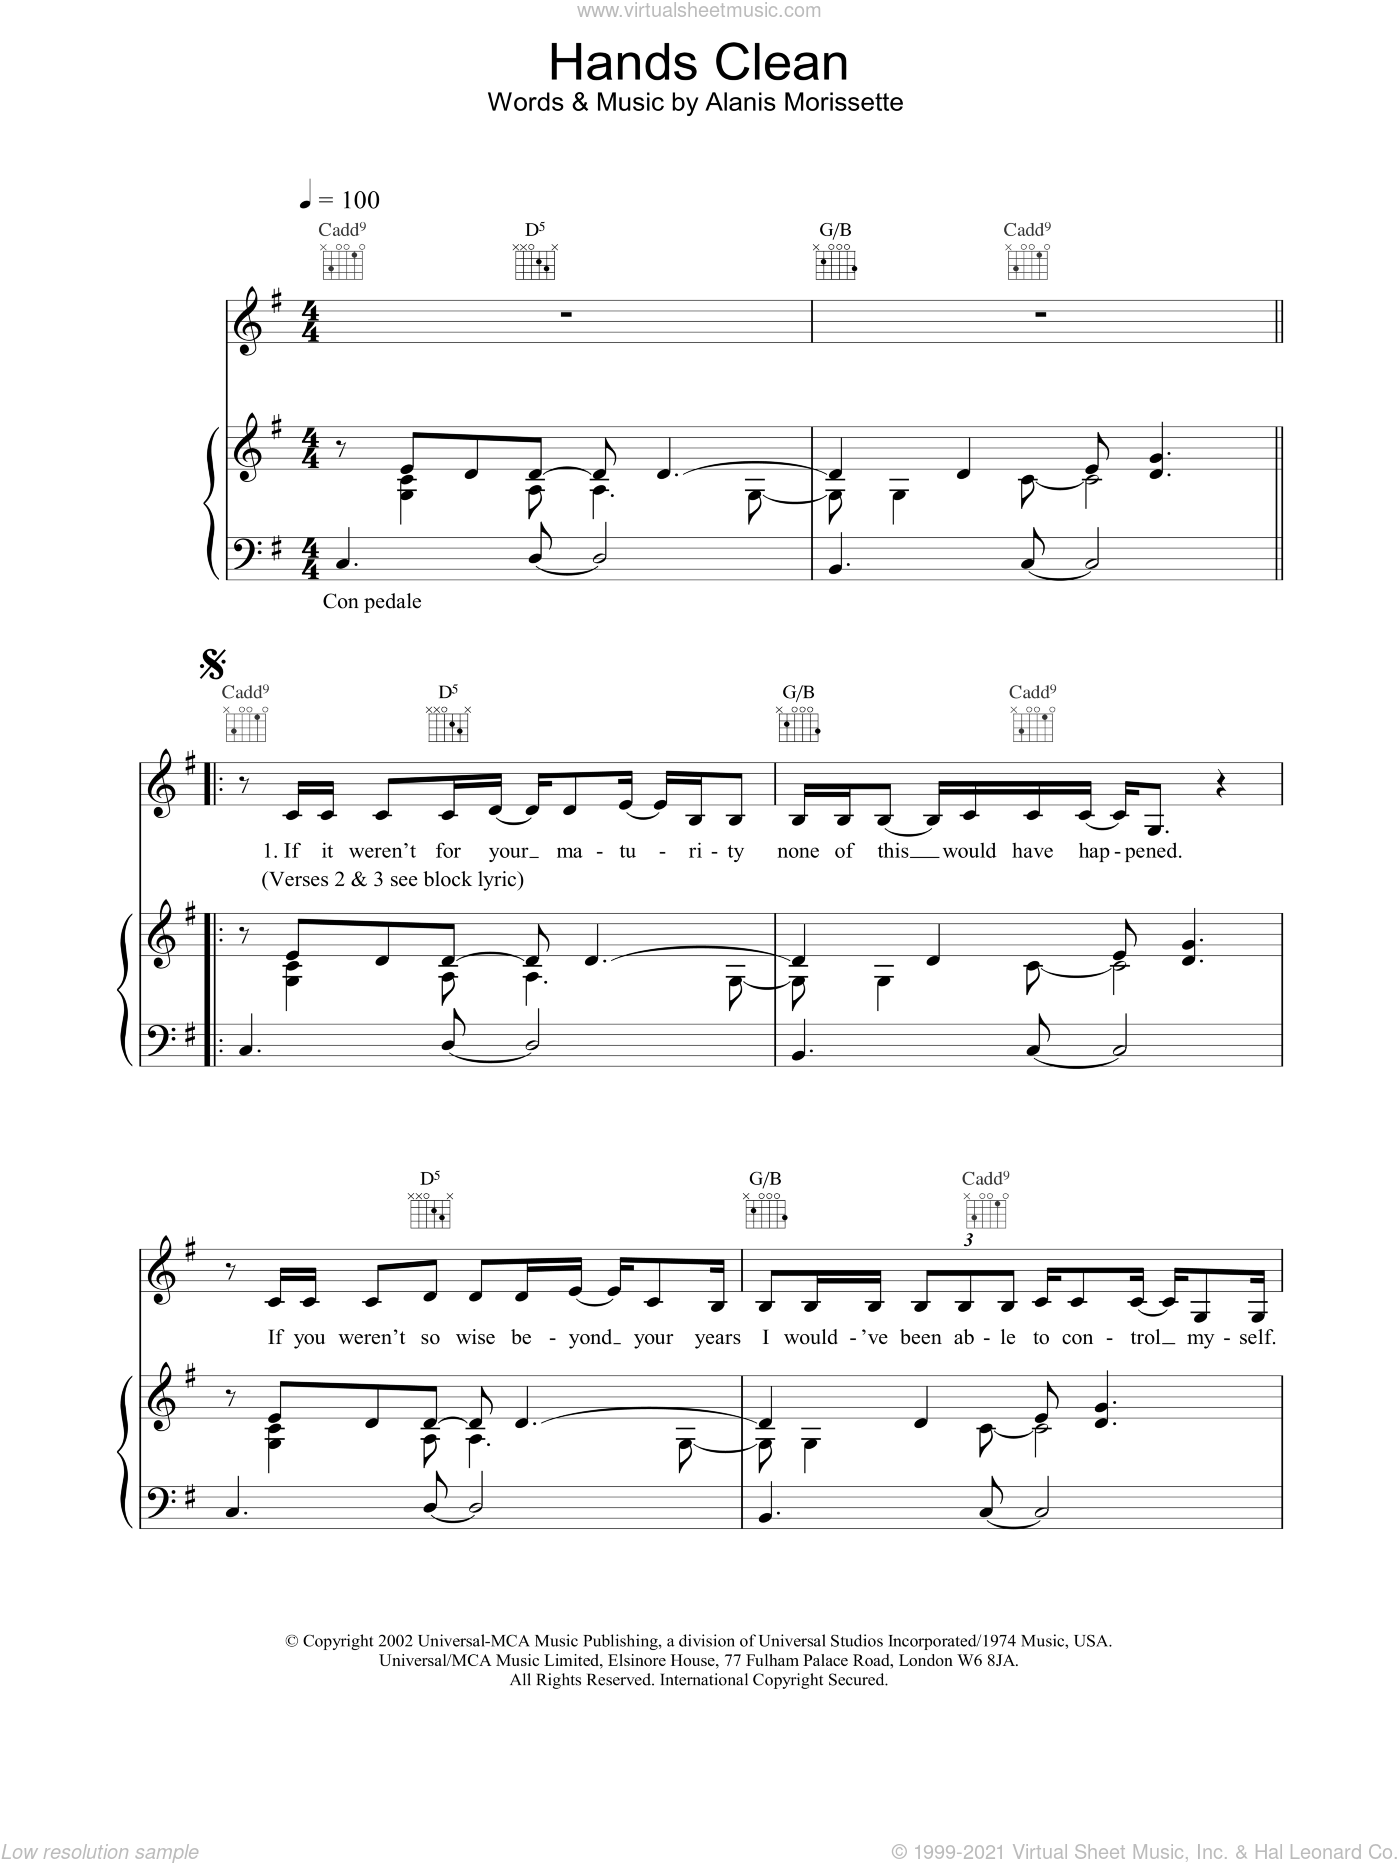 Hands Clean sheet music for voice, piano or guitar by Alanis Morissette, intermediate skill level